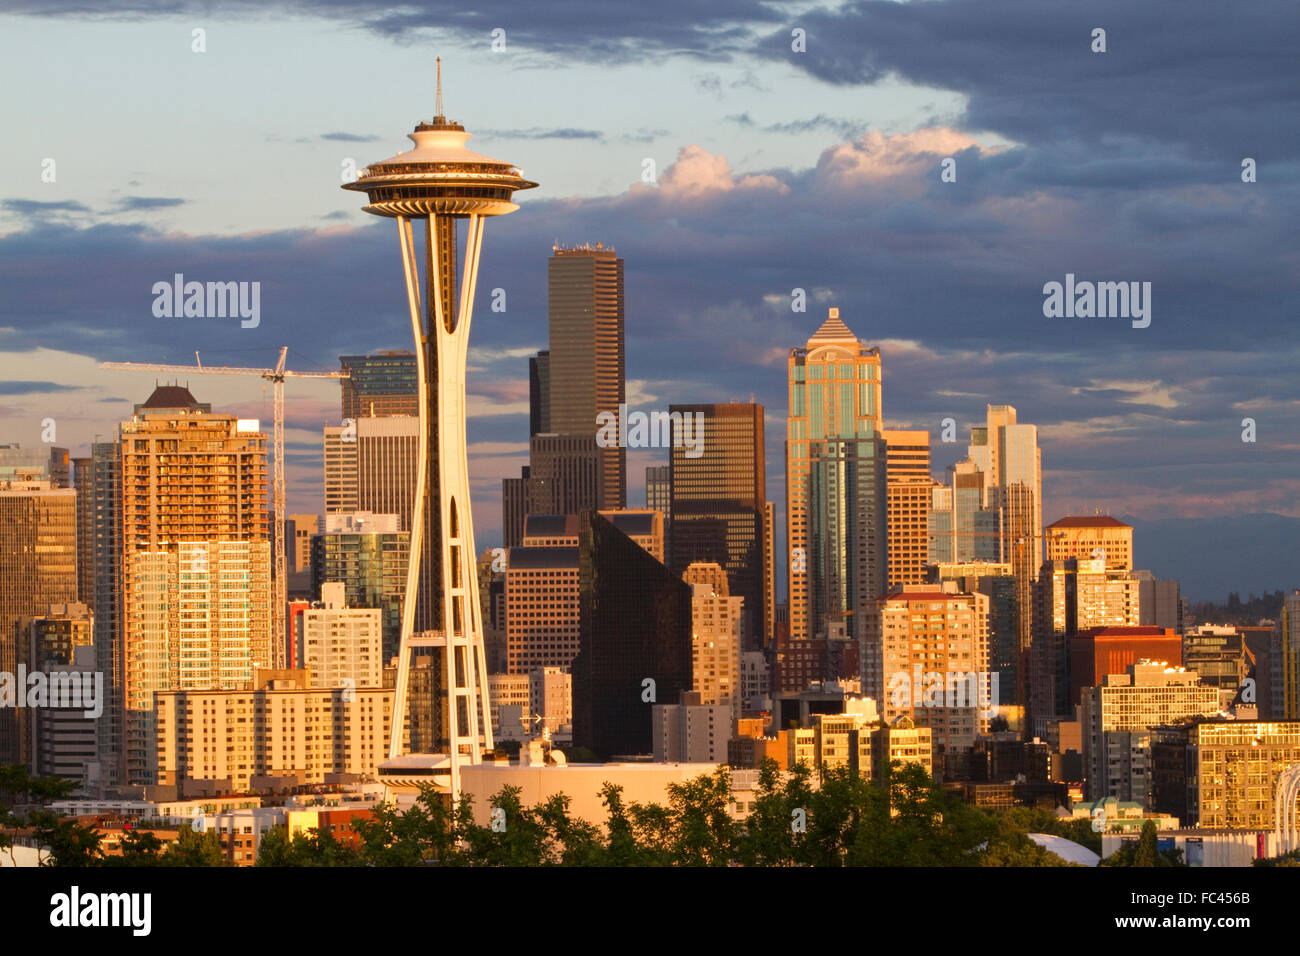 La città di Seattle scape al tramonto con lo Space Needle, Washington, Stati Uniti d'America. Immagini Stock